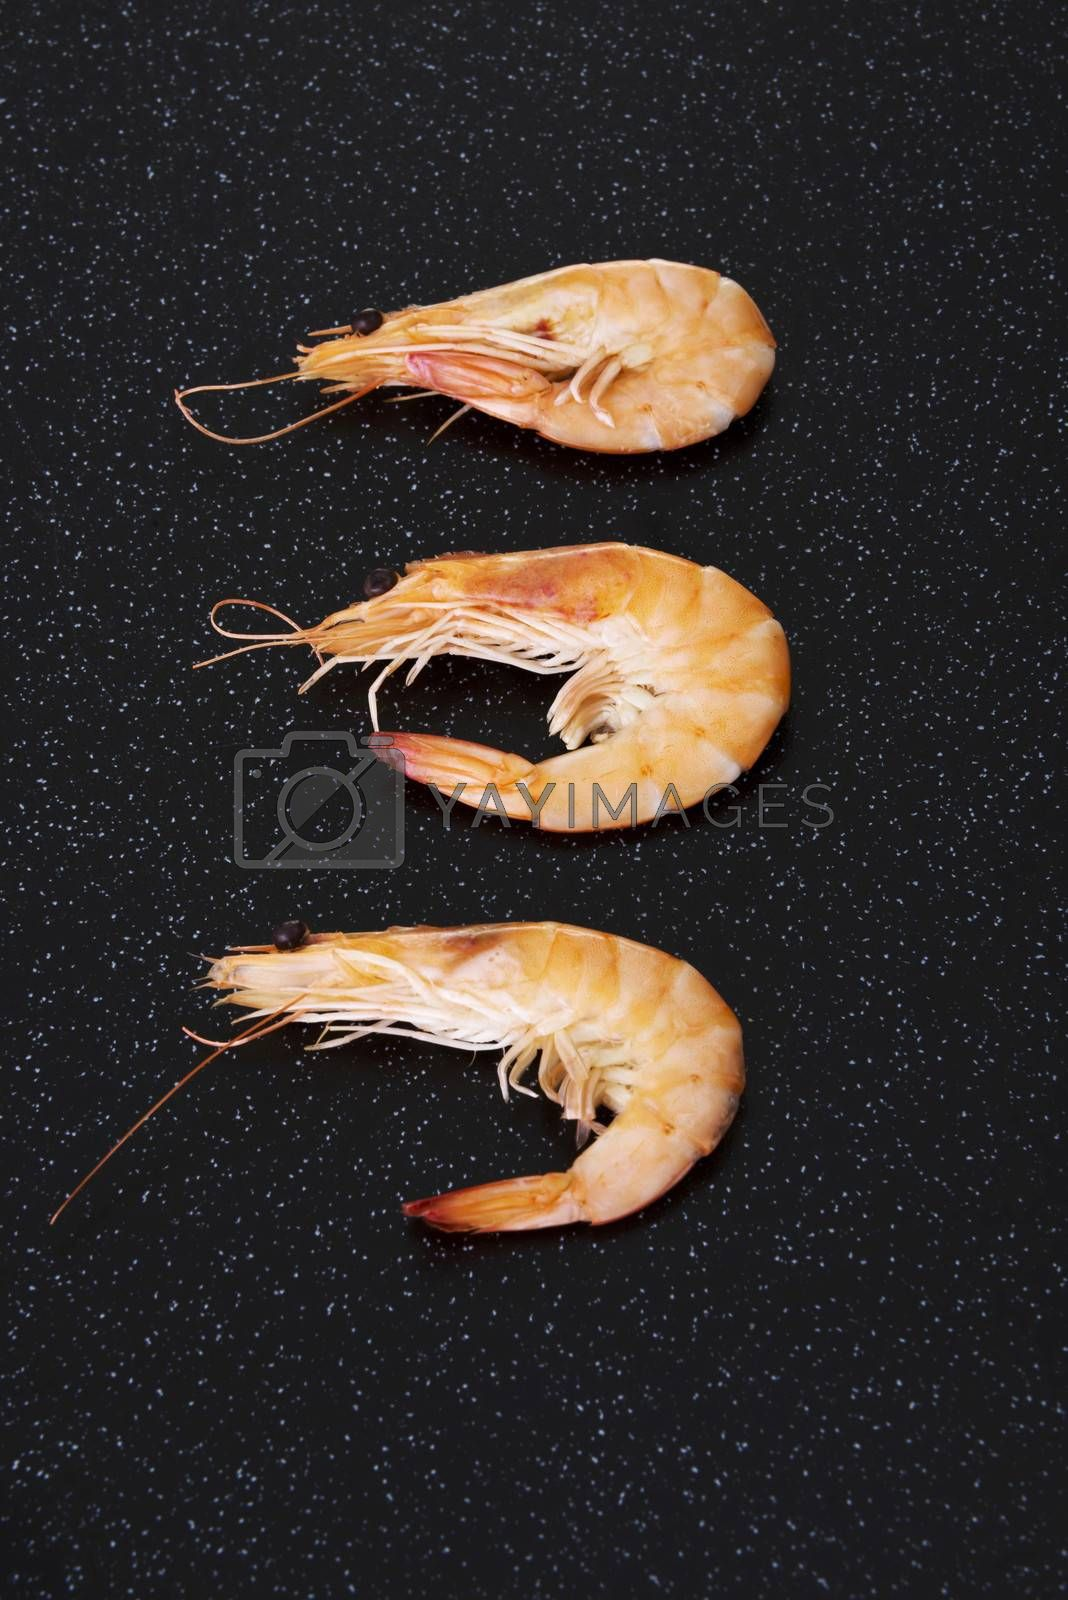 Three separated shrimps lying on a dark kitchen table.